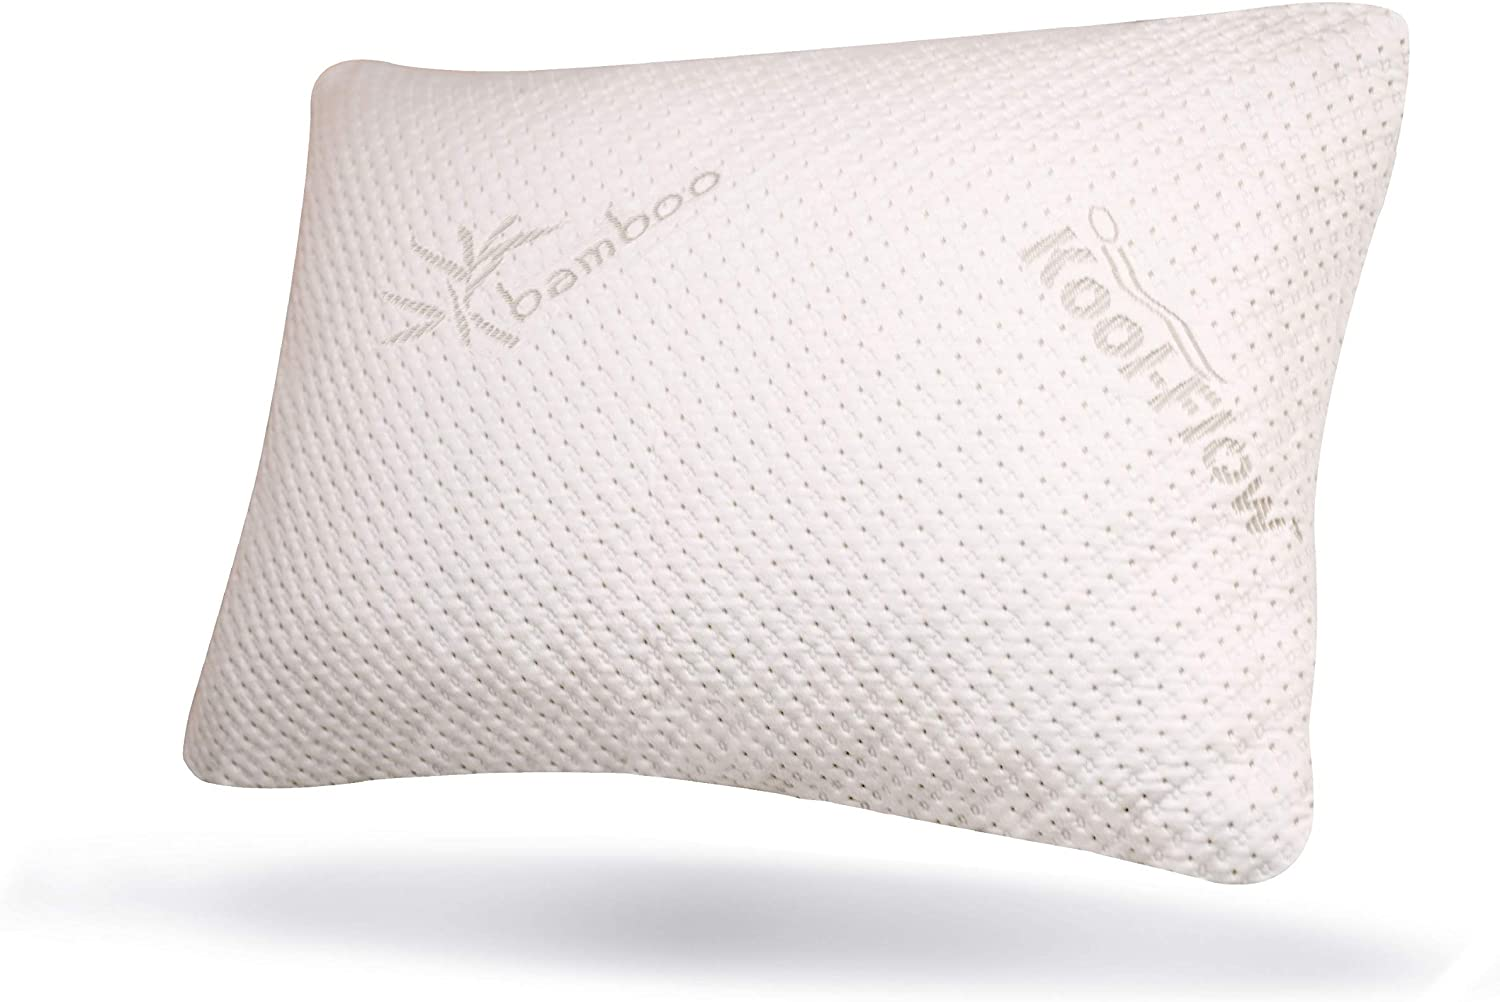 If you are struggling with neck pain it could be your pillow that is causing your neck pain and it might be time to change it